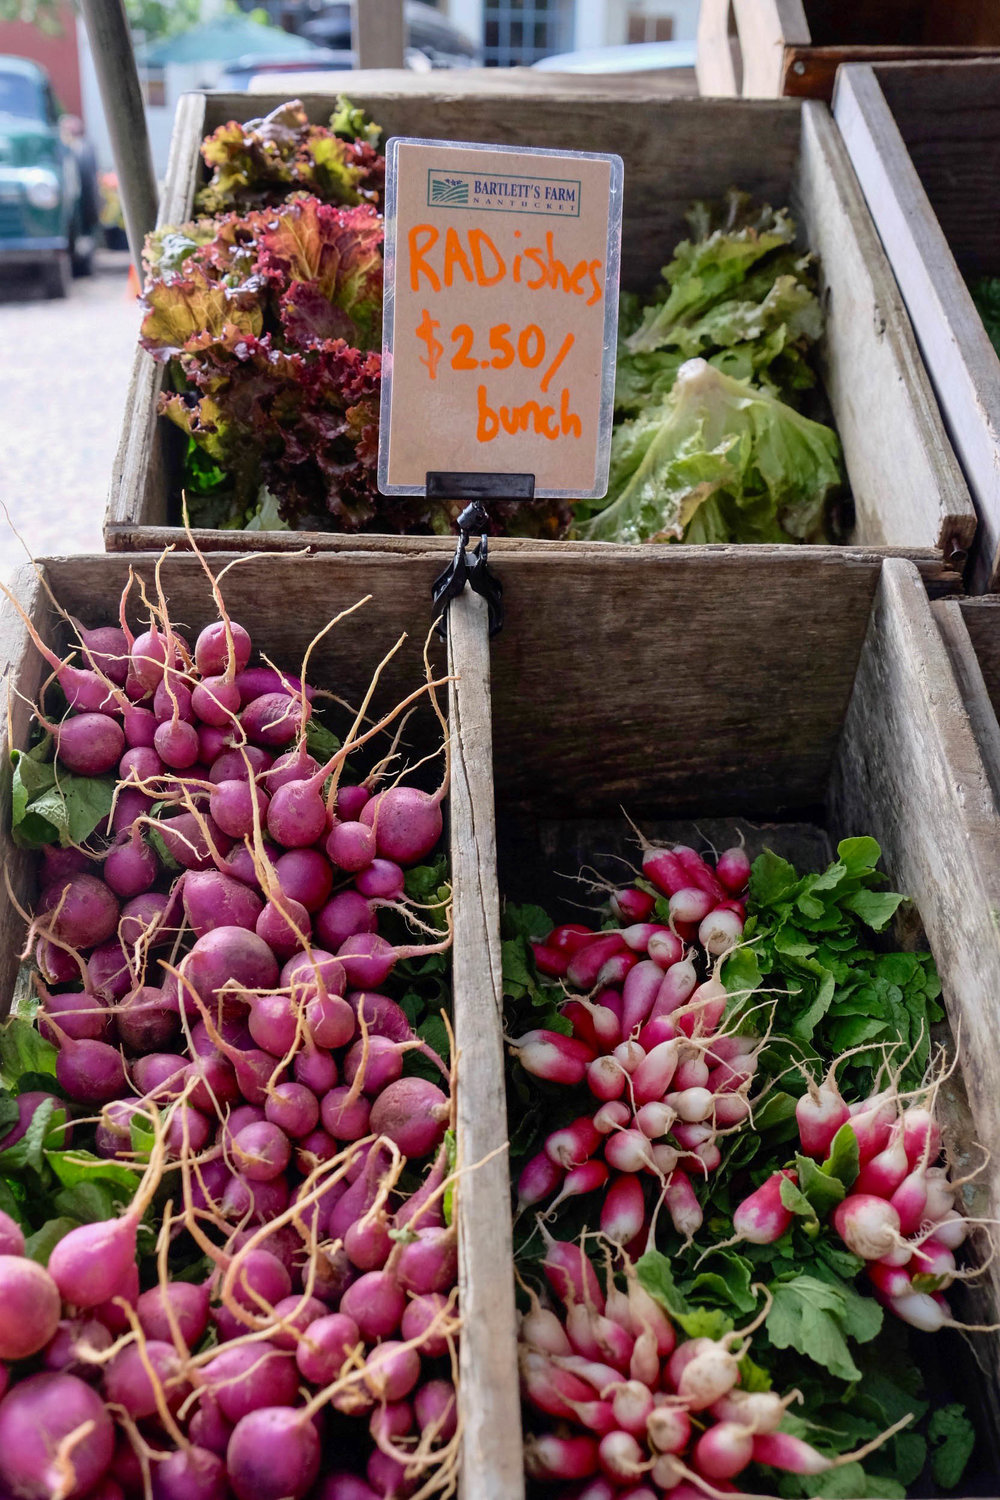 nantucket-farmers-market-radish-laurenschwaiger-lifestyle-travel-blog.jpg